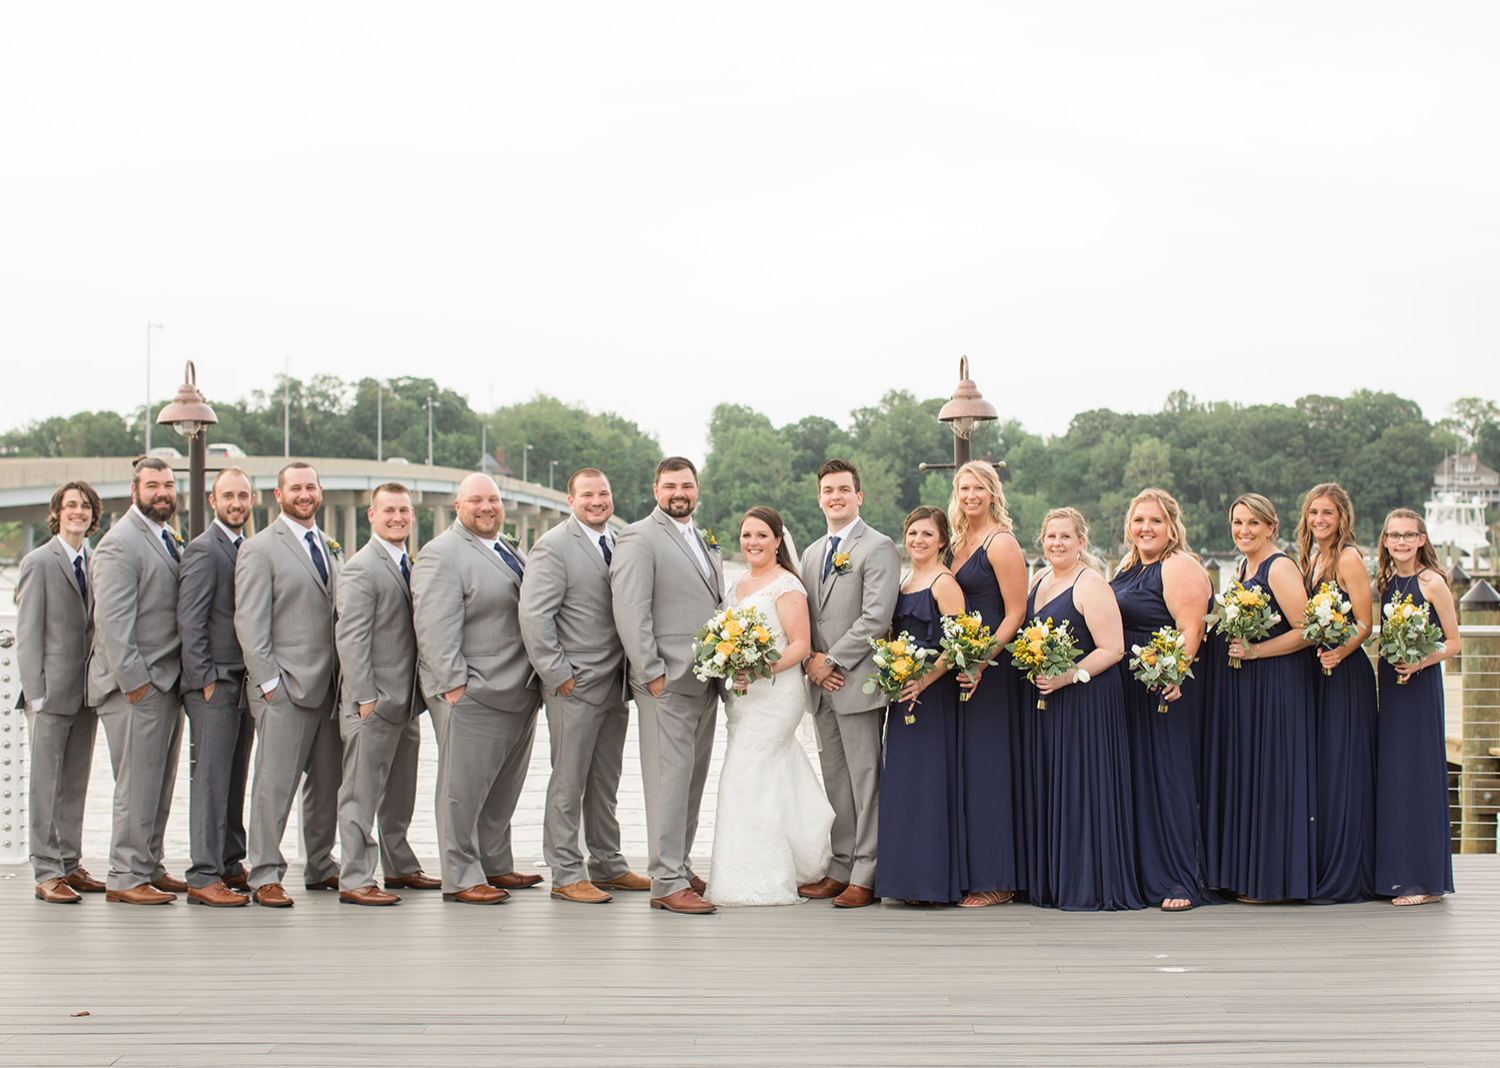 bride and groom with their wedding party